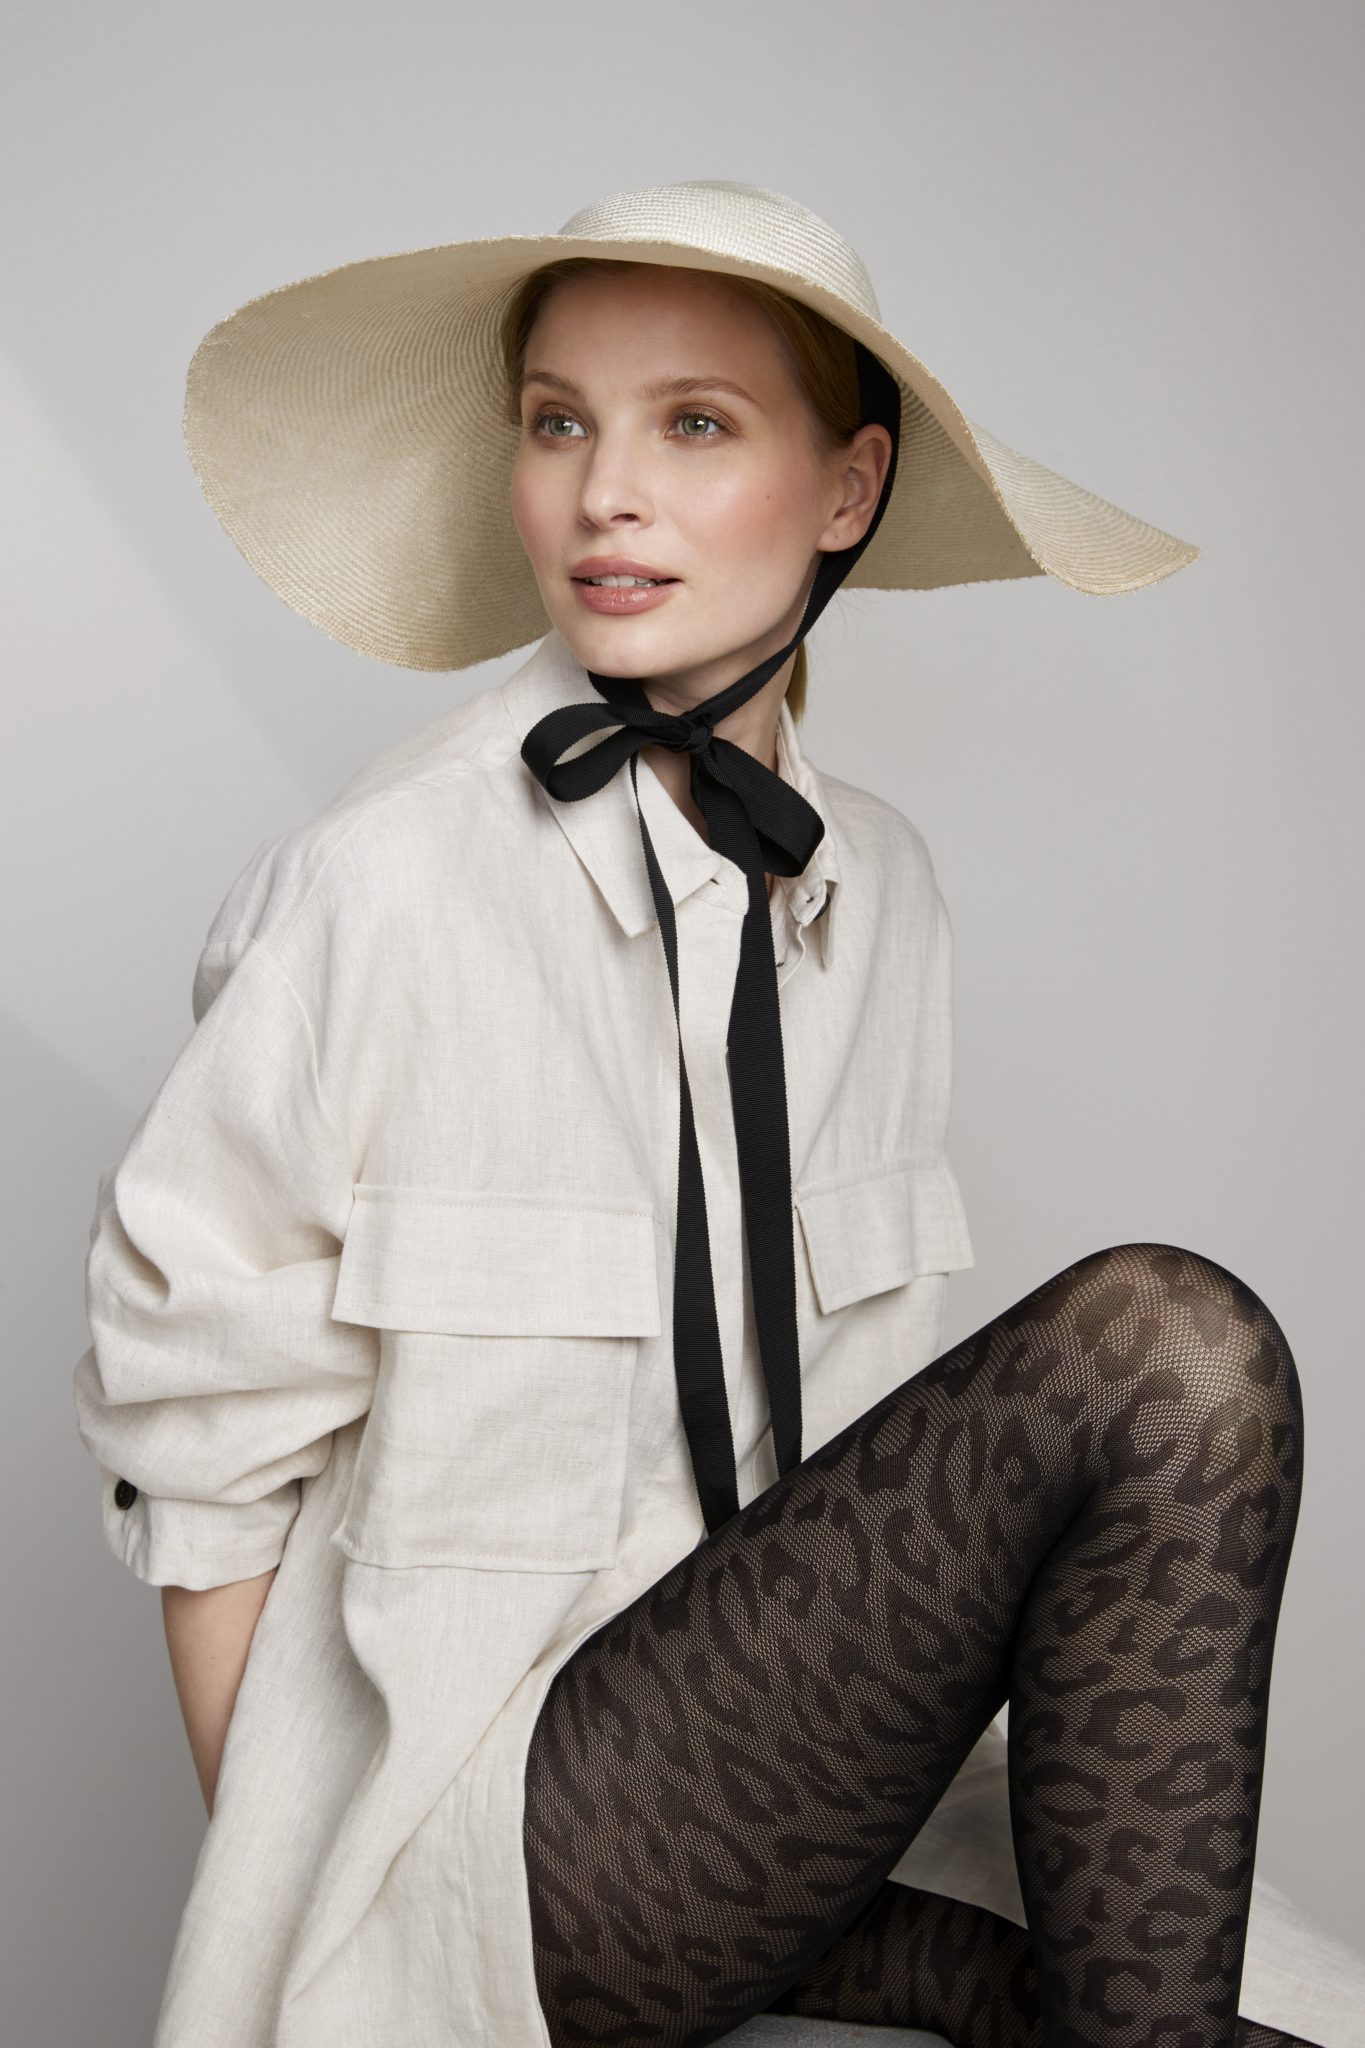 ANNA for Vogue Hosiery SS21